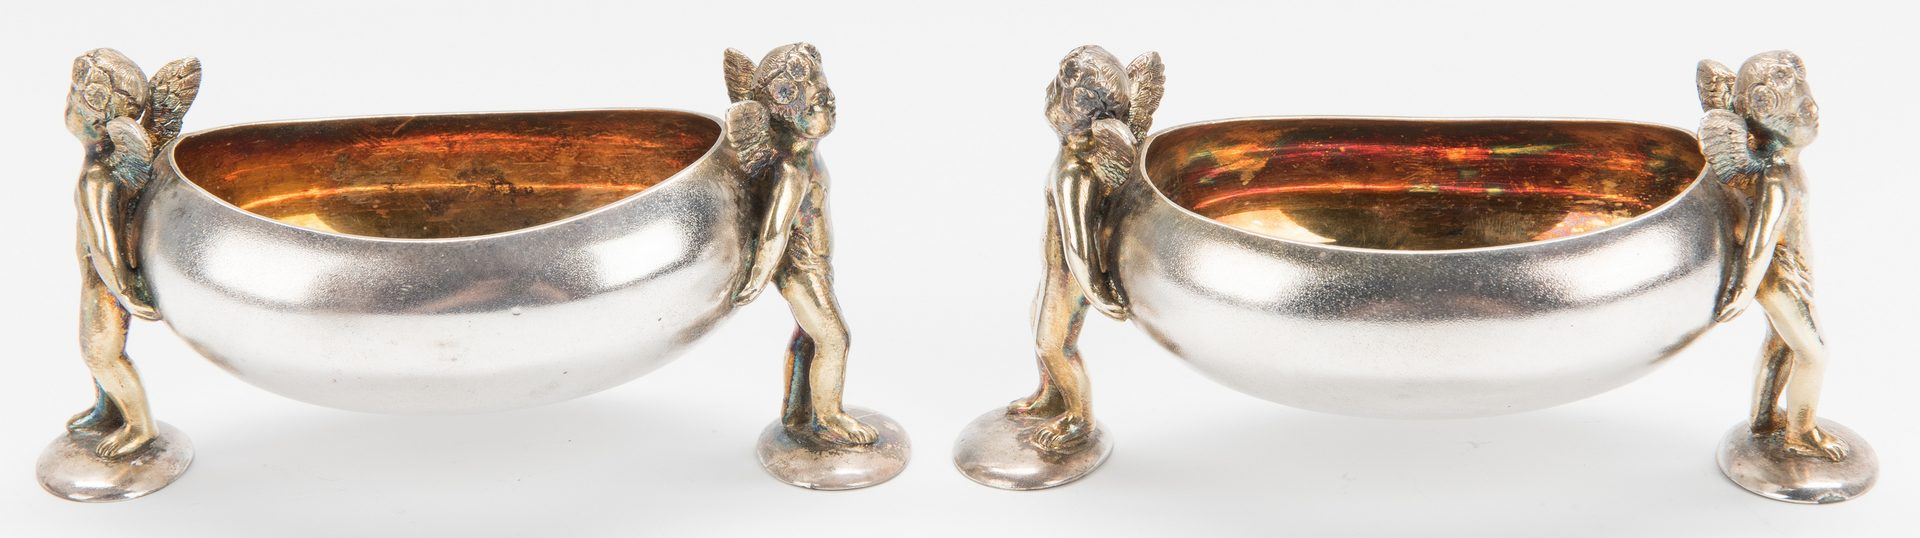 Lot 639: Cherub Figural Salt Set, Cased